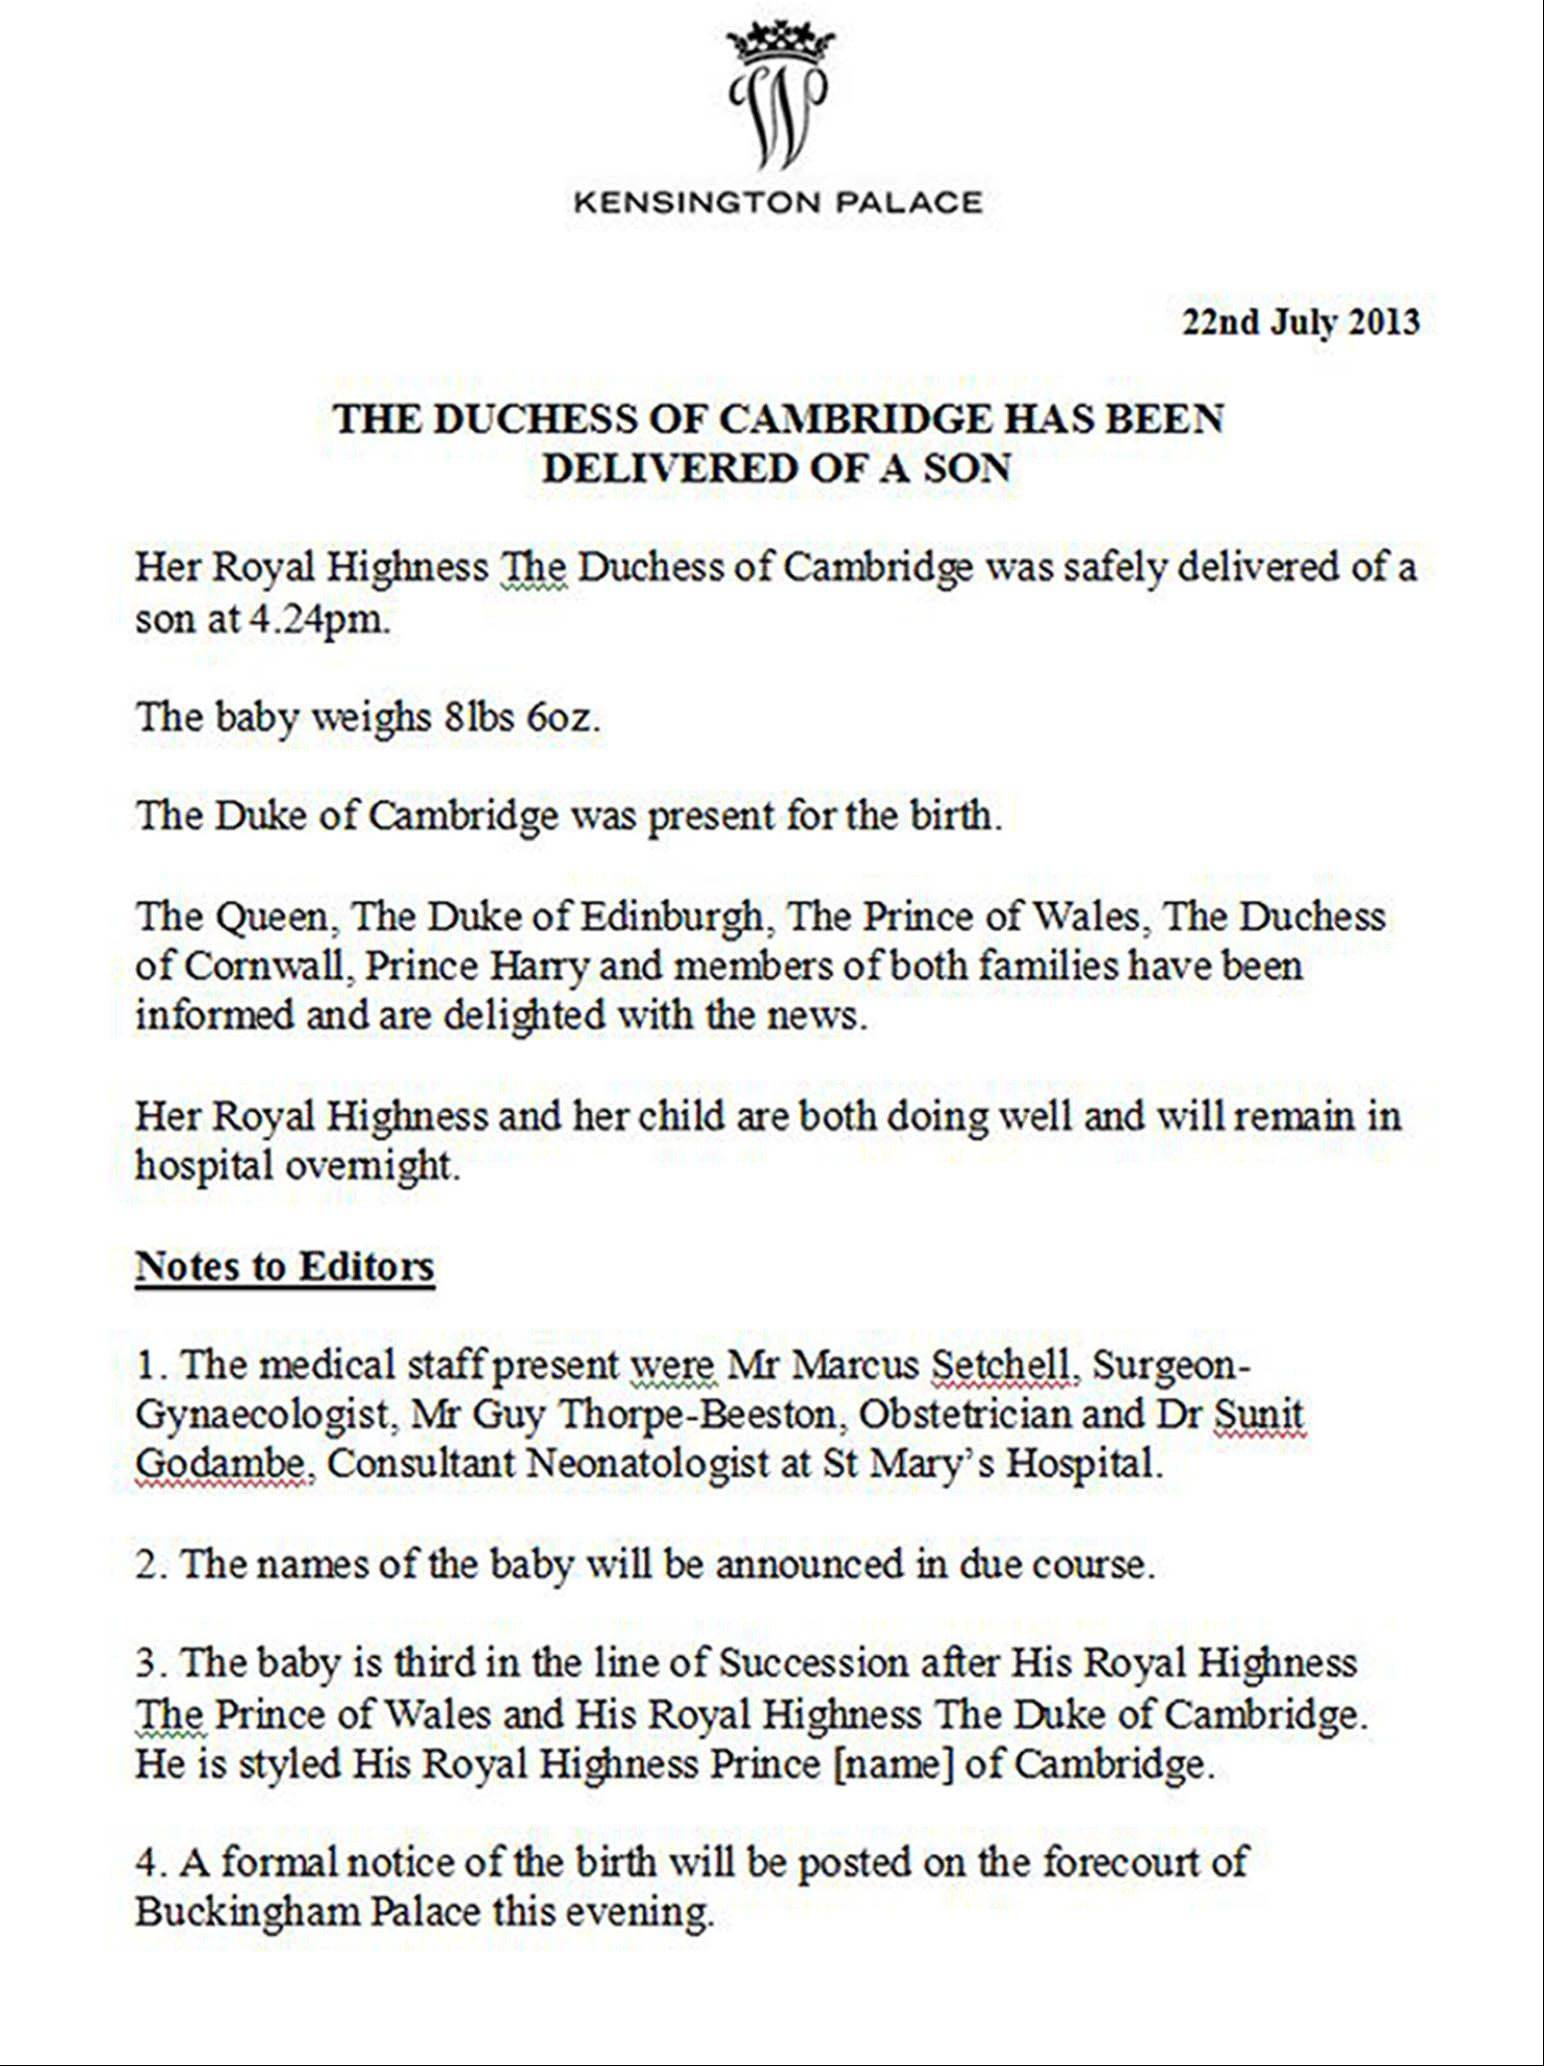 The press release from Kensington Palace announcing the birth of the son of Prince William and Kate, the Duchess of Cambridge, in London, Monday July 22, 2013.